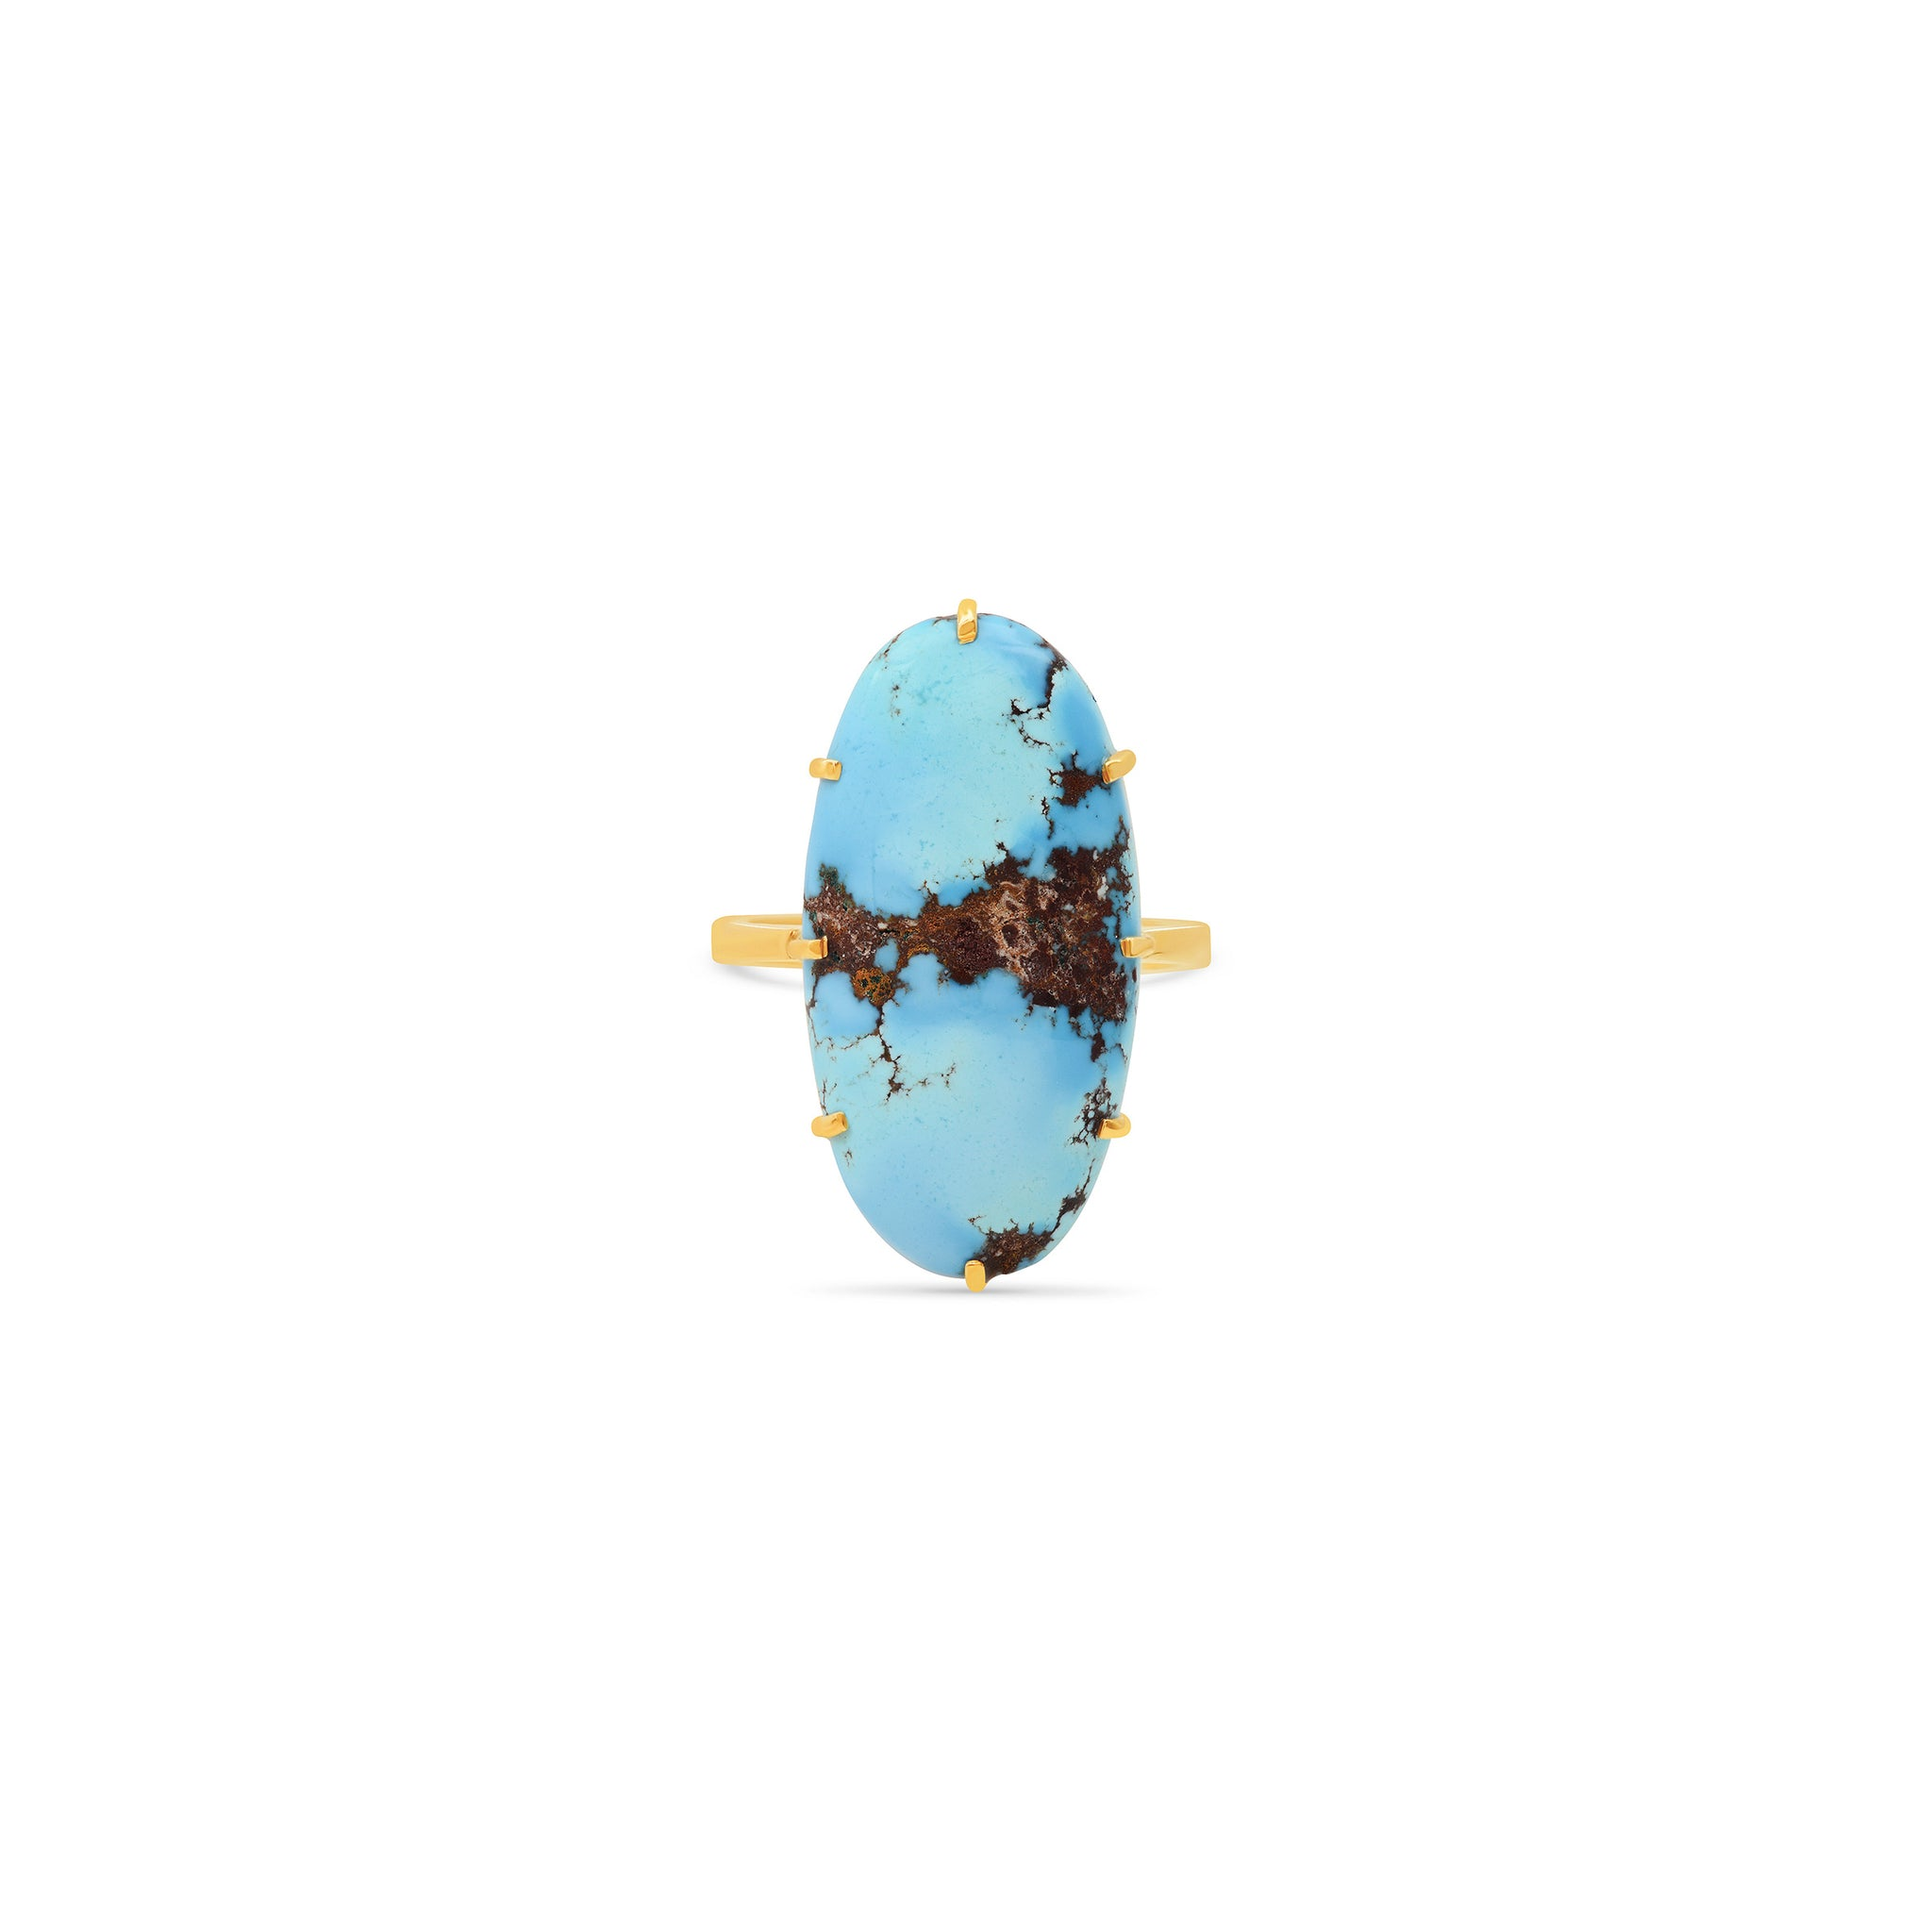 One of a Kind Natural Turquoise Ring